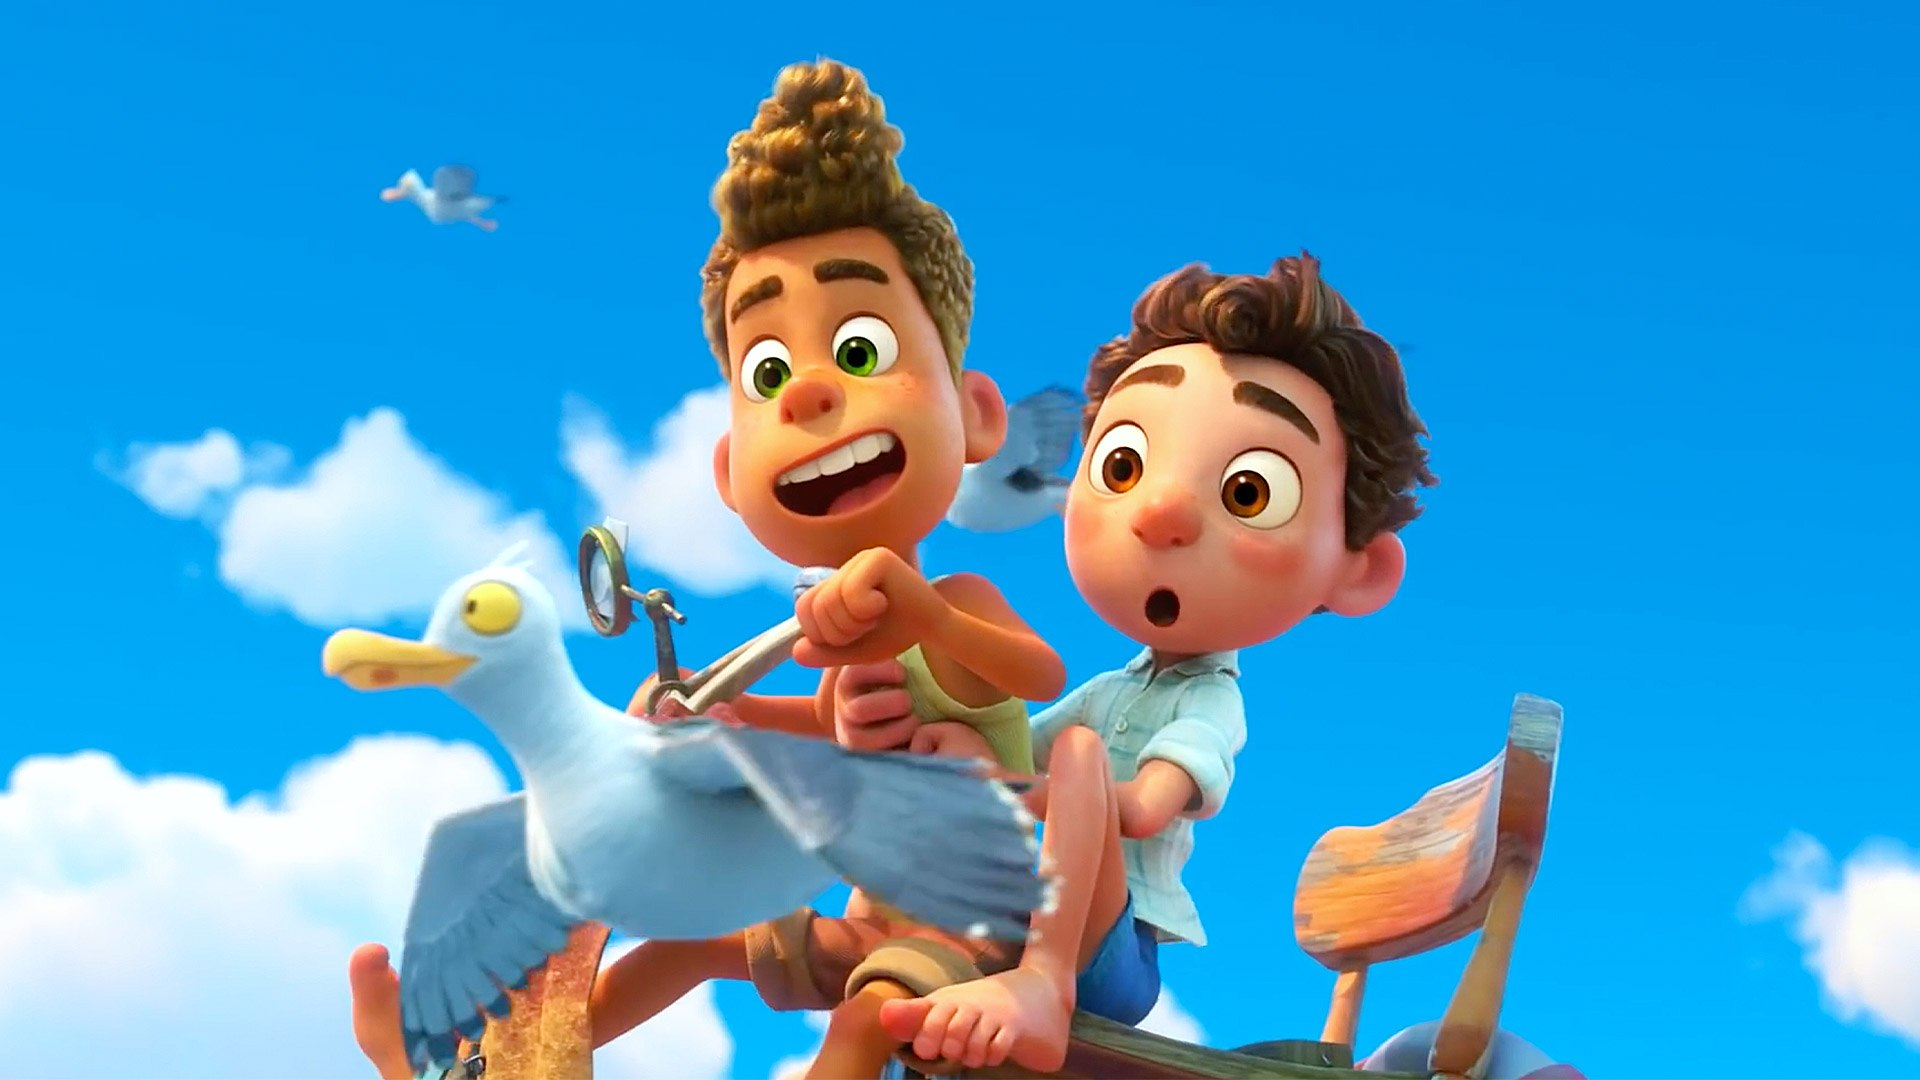 Pixar Says Luca Isn't Gay, but the Movie Speaks for Itself